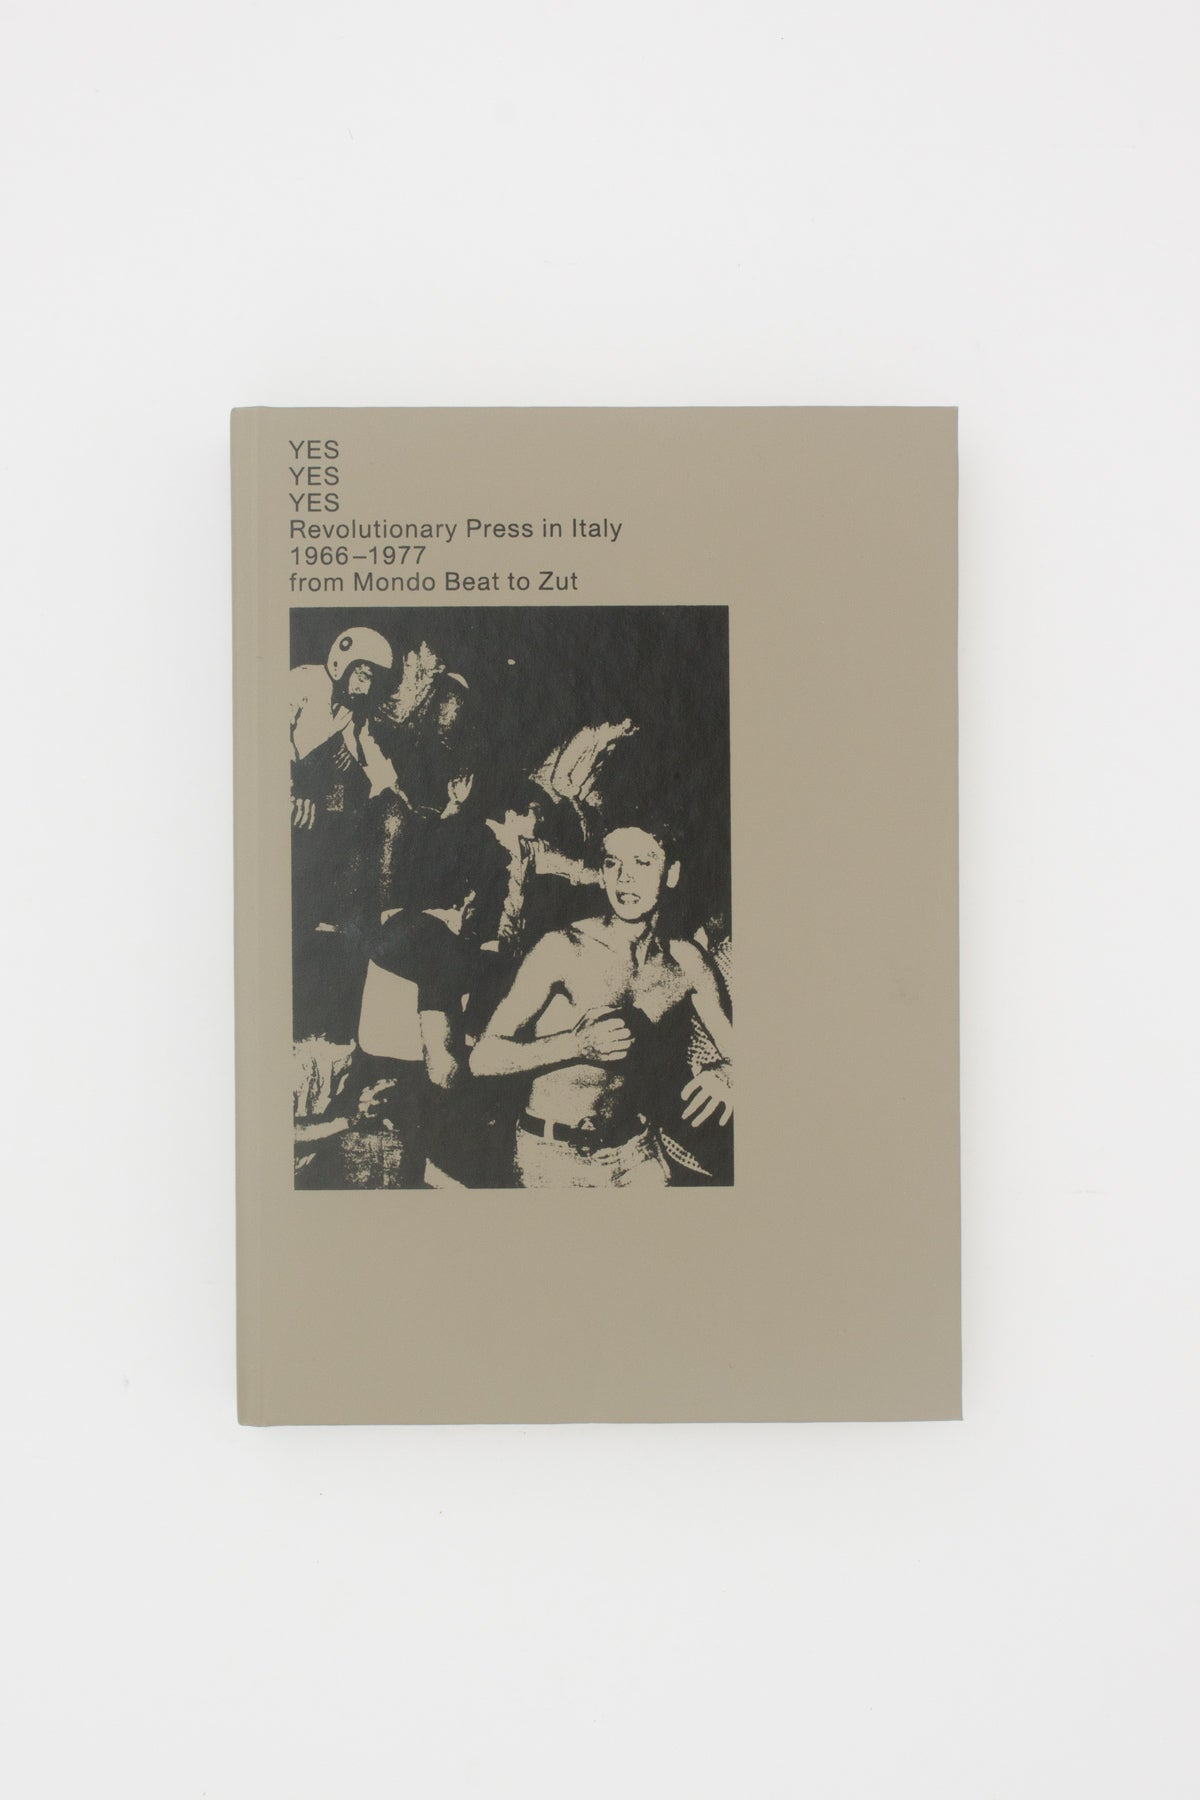 Yes Yes Yes Revolutionary Press In Italy 1966-1977 From Mondo Beat To Zut -  E. De Donno ; A. Martegani Eds.